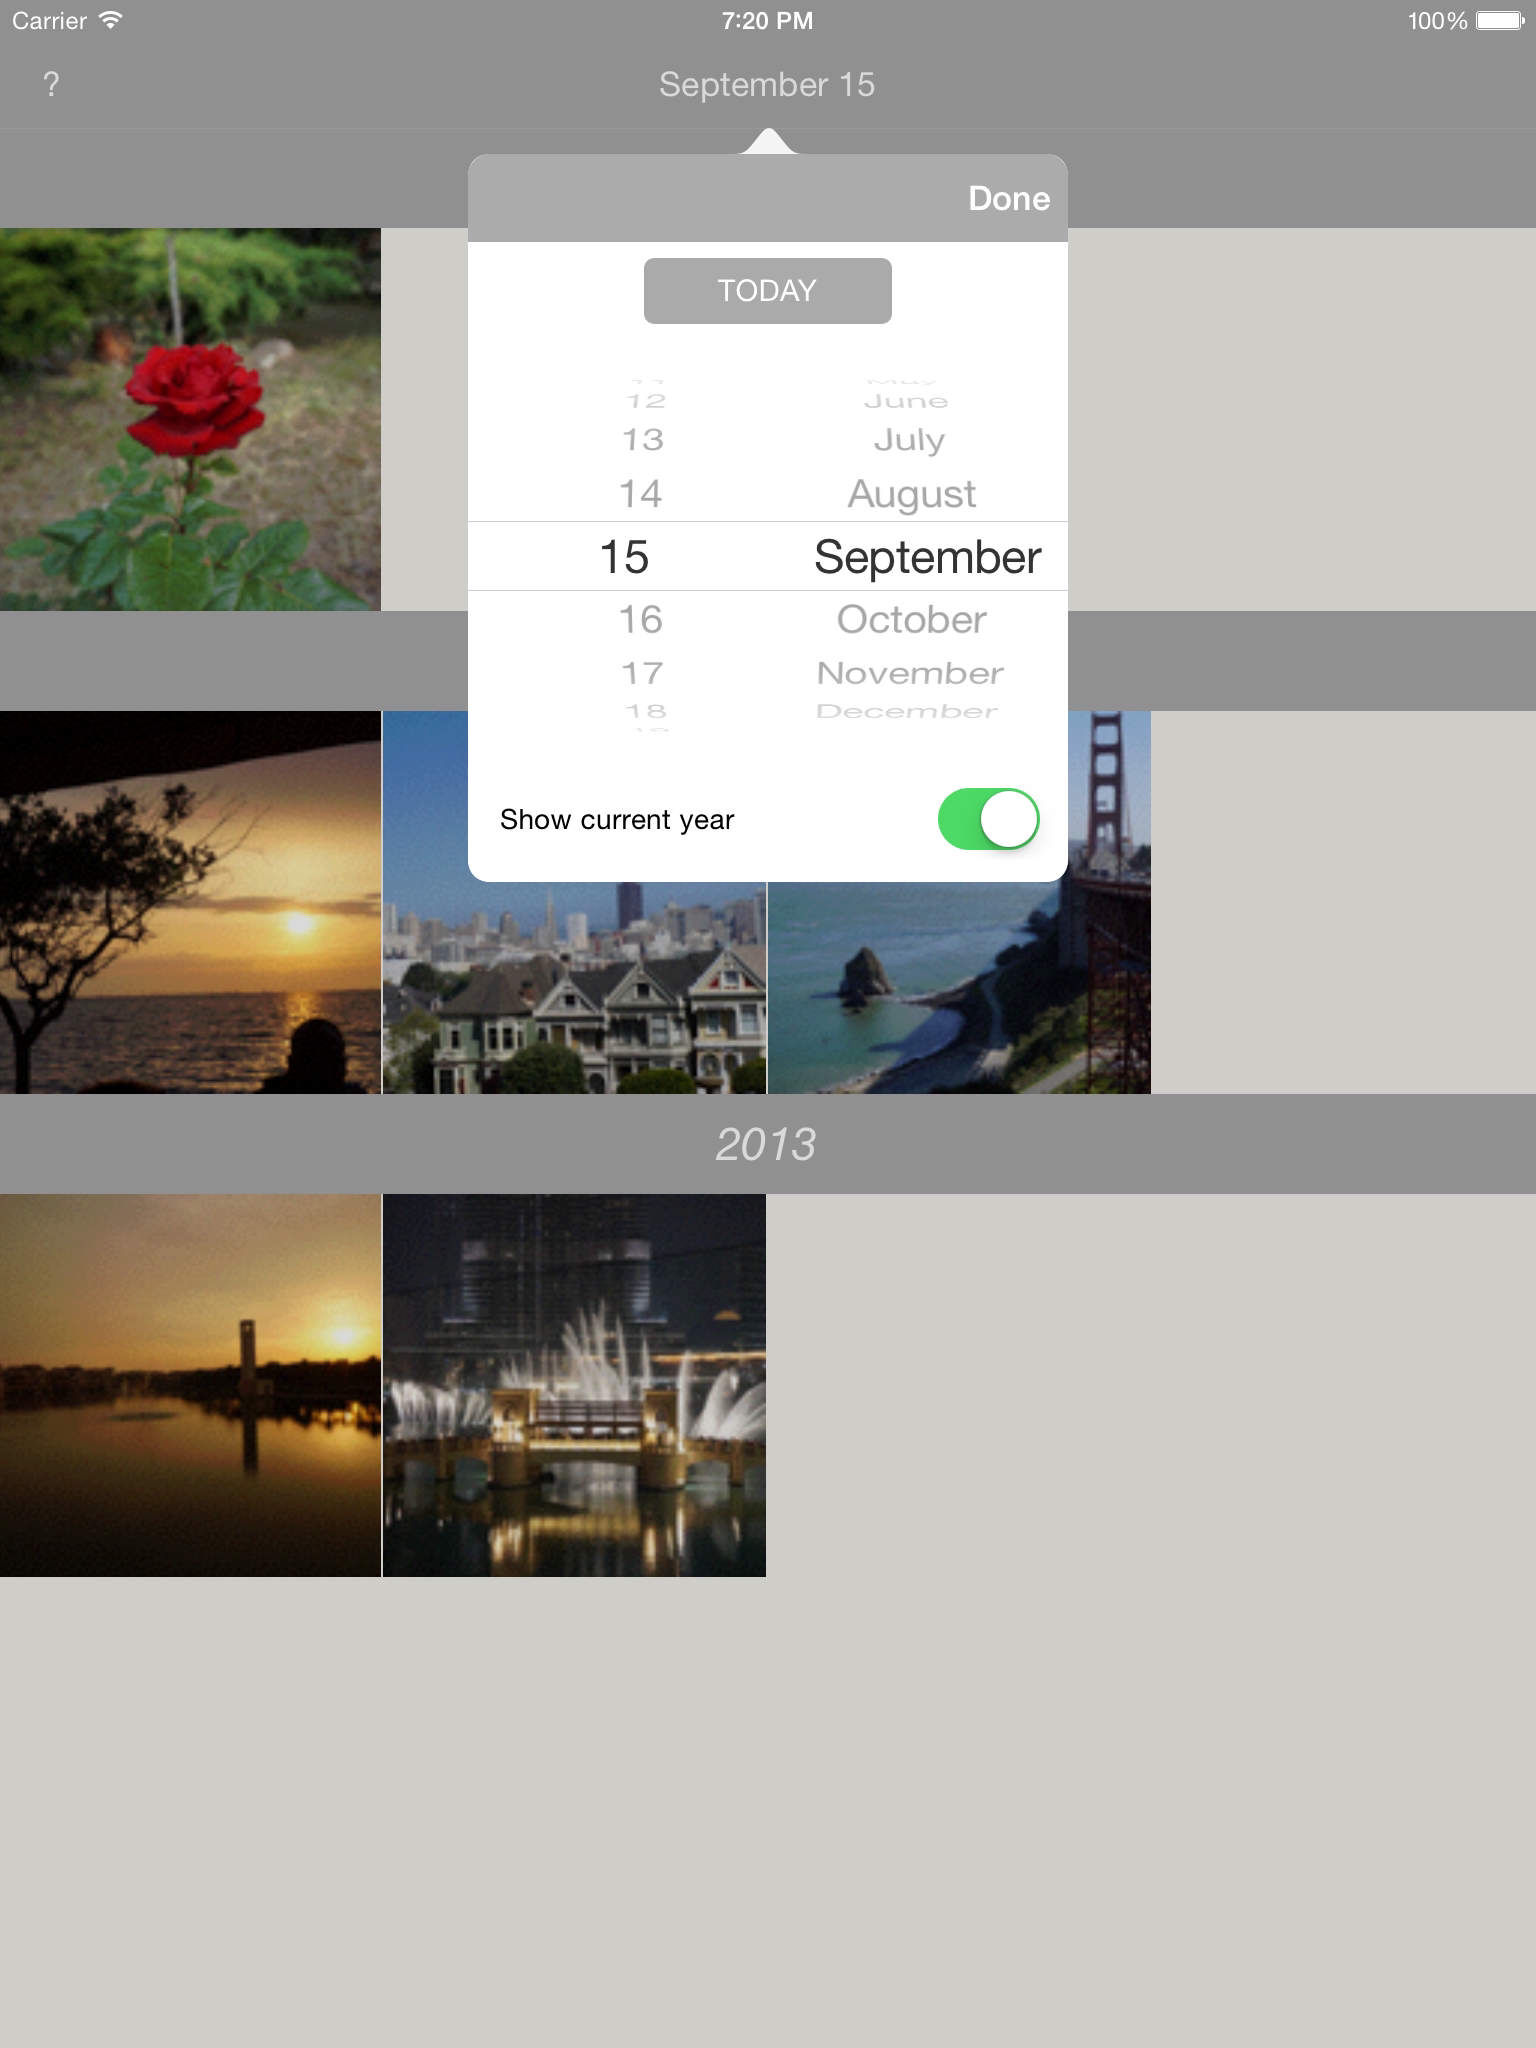 Photo Flashback, the iOS photo time machine, is now even better